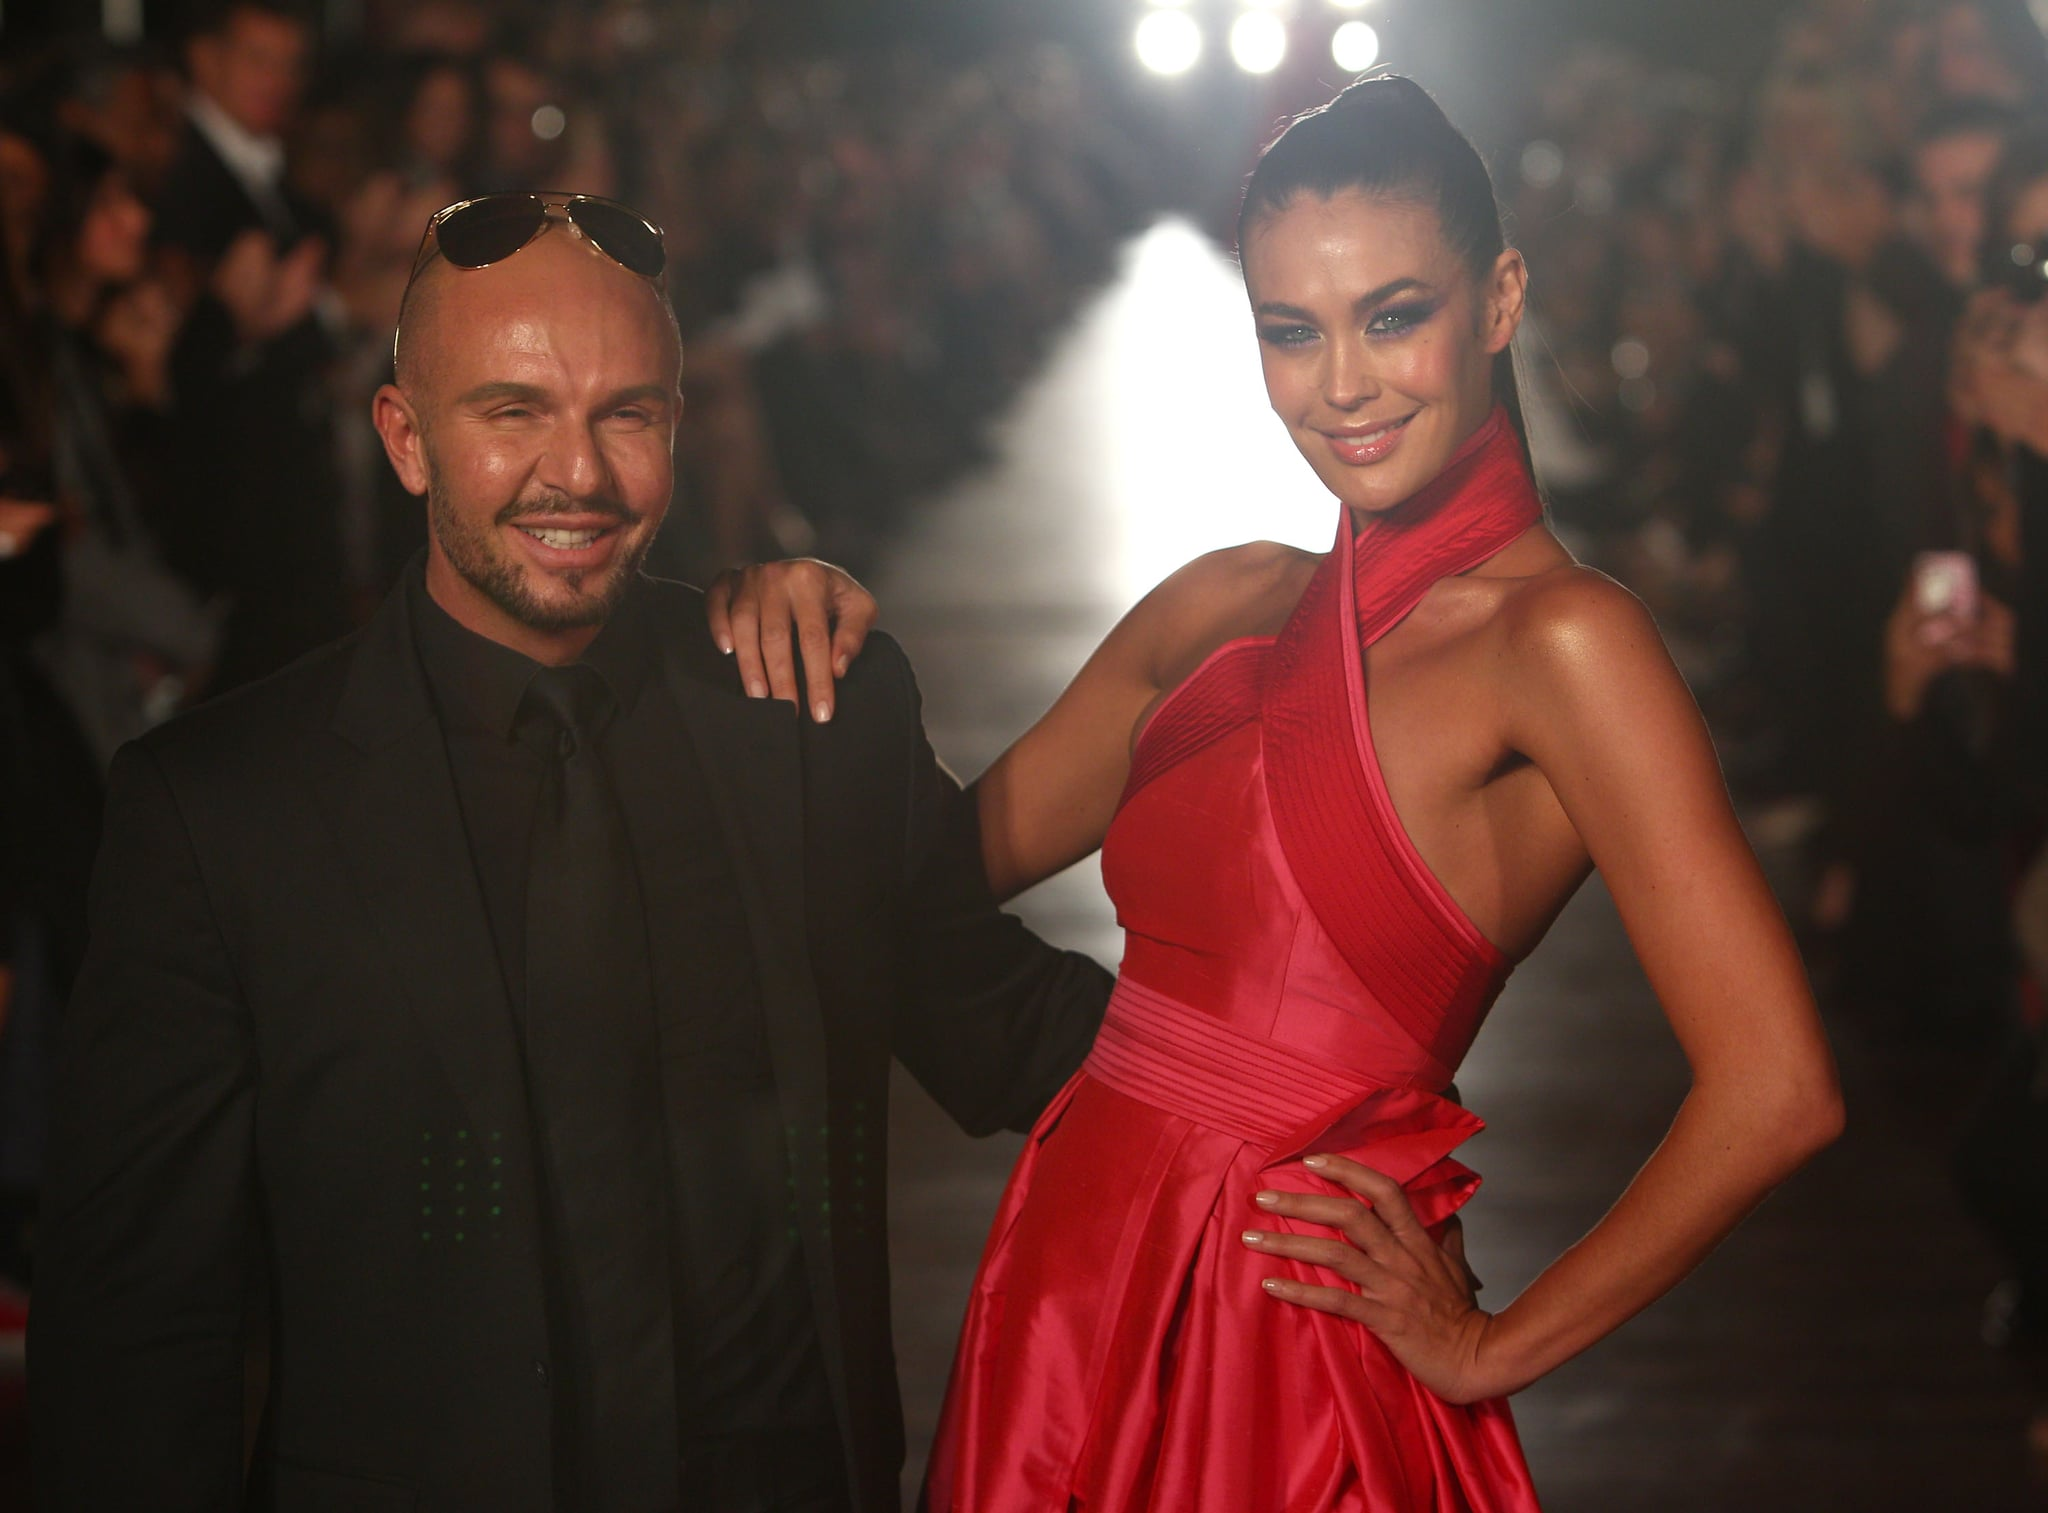 Alex Perry and Megan Gale